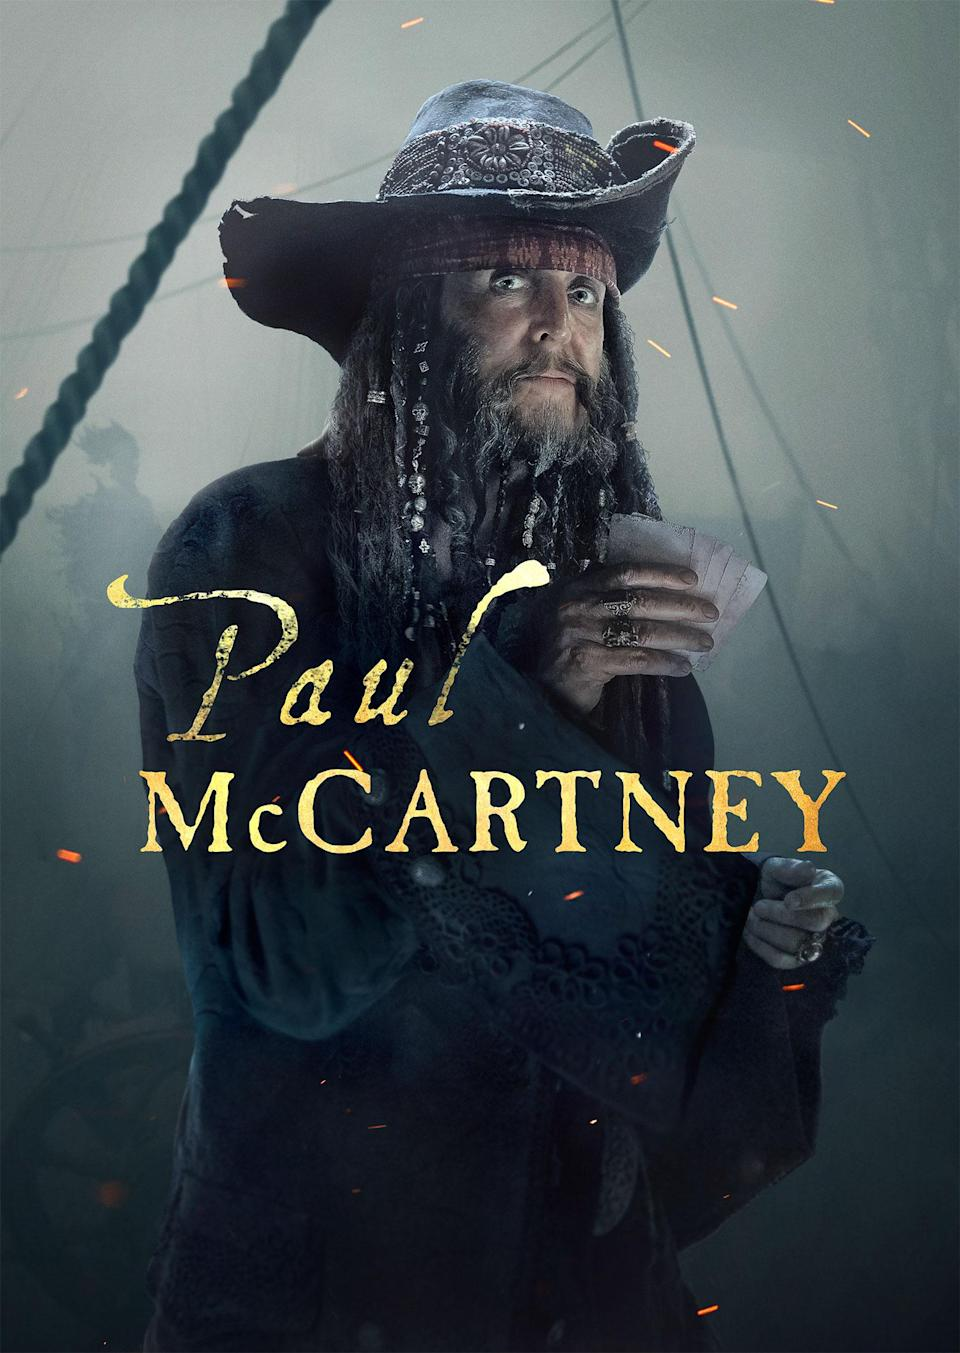 Paul McCartney shared his character poster on Twitter (Disney)